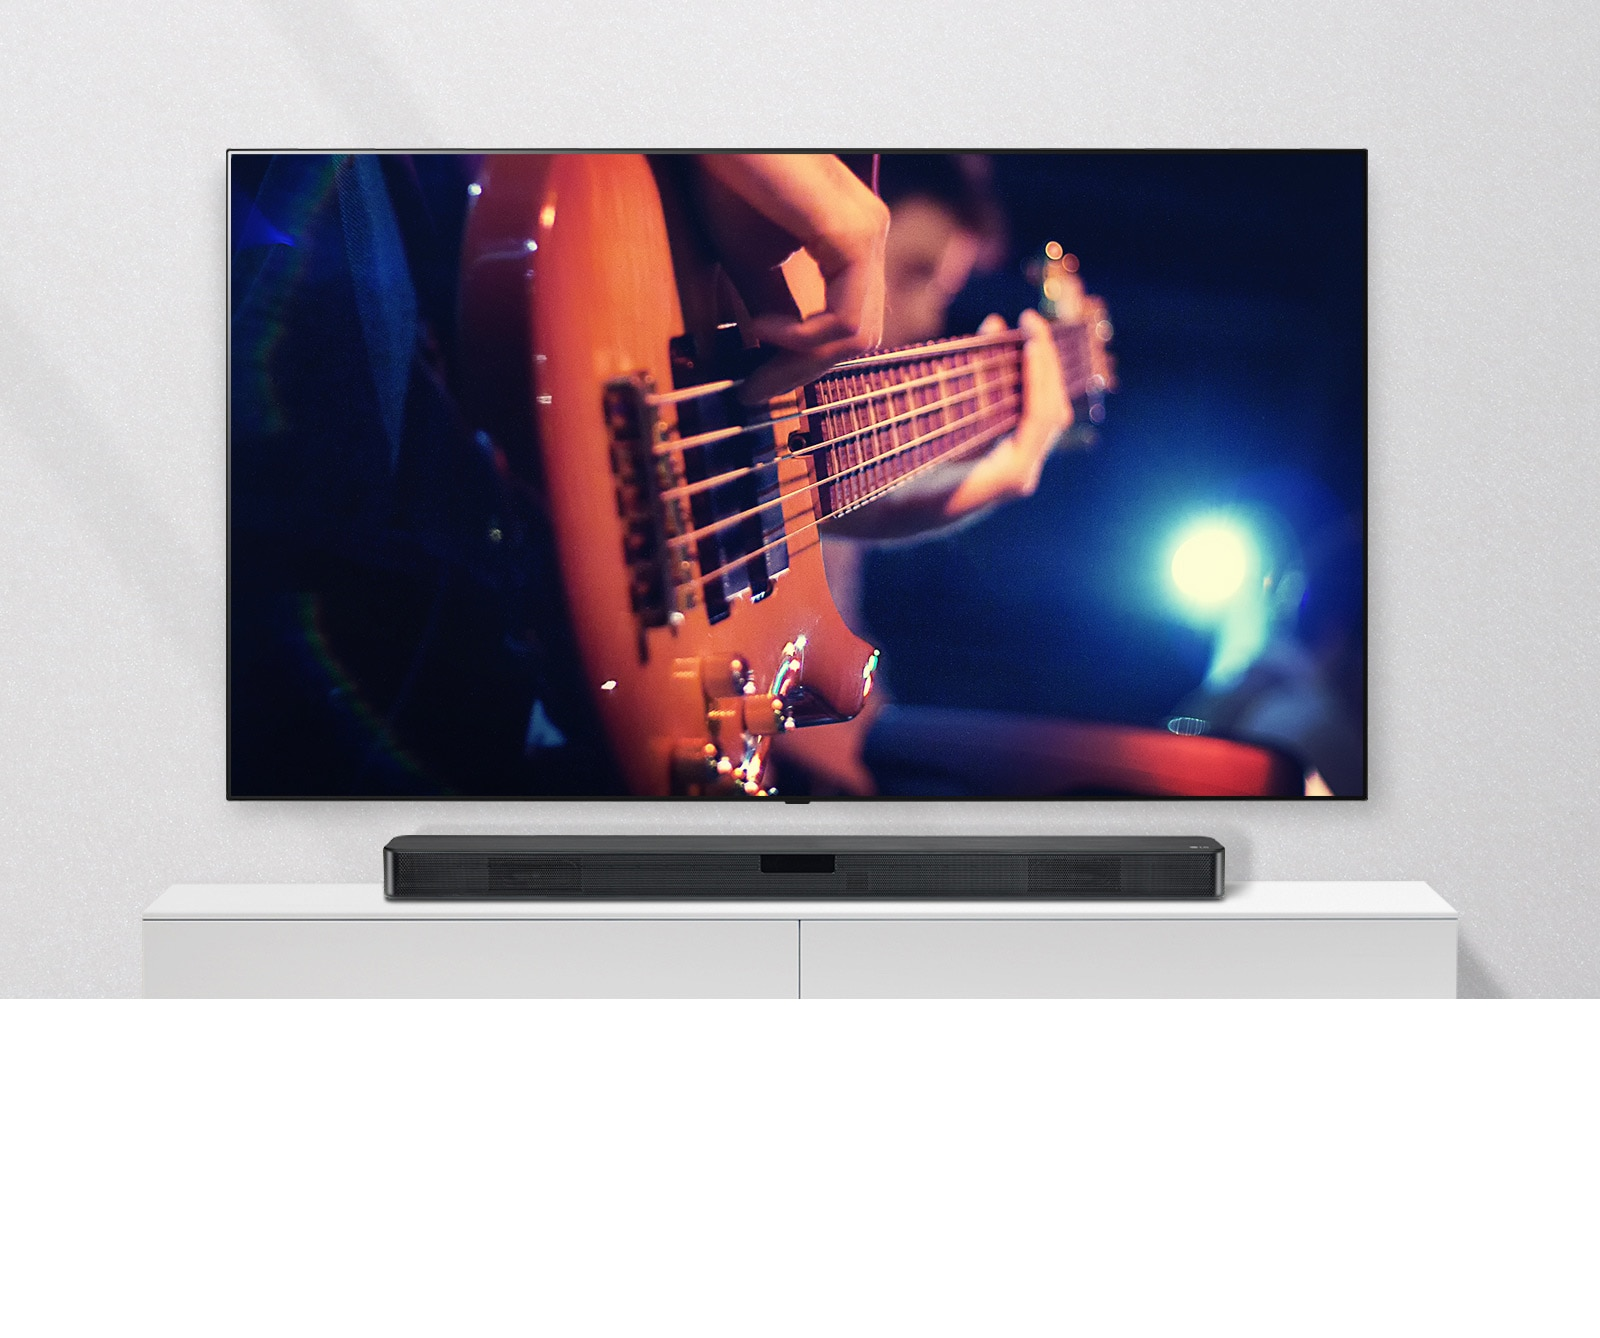 The TV is attached to the wall, and the sound bar is on a white shelf. TV showing a man plays guitar.